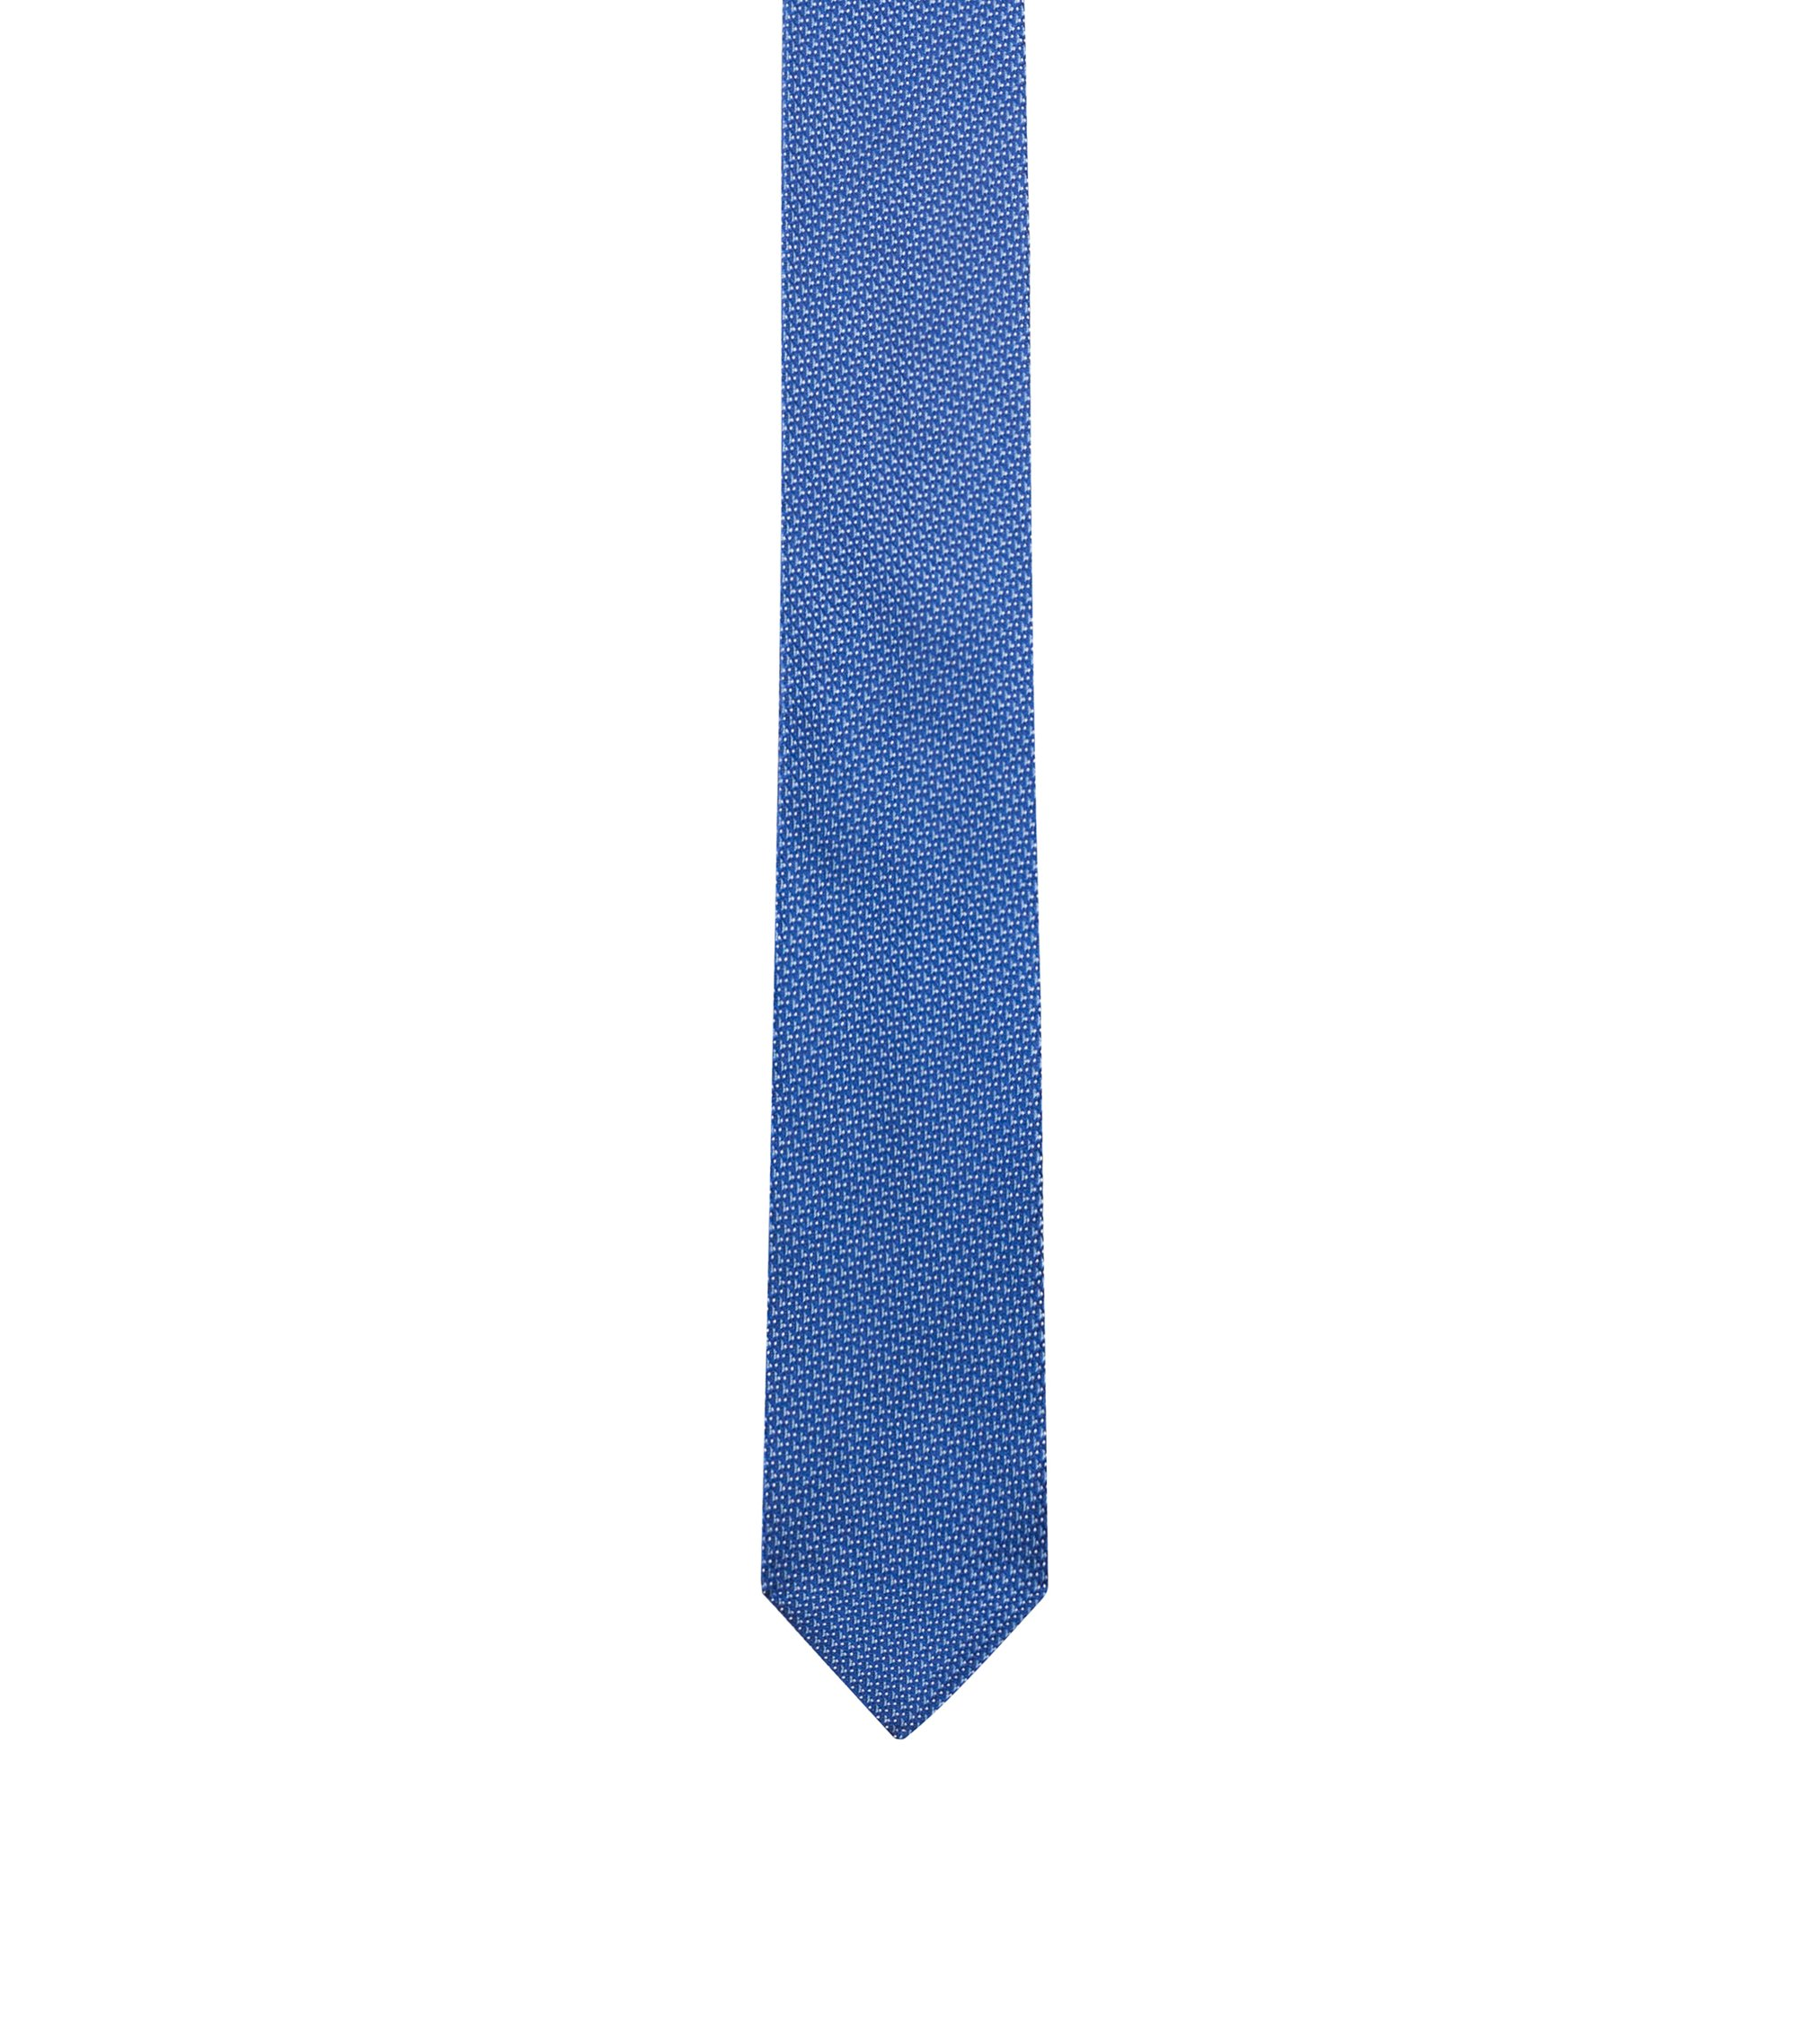 Silk-jacquard tie with micro pattern, Open Blue